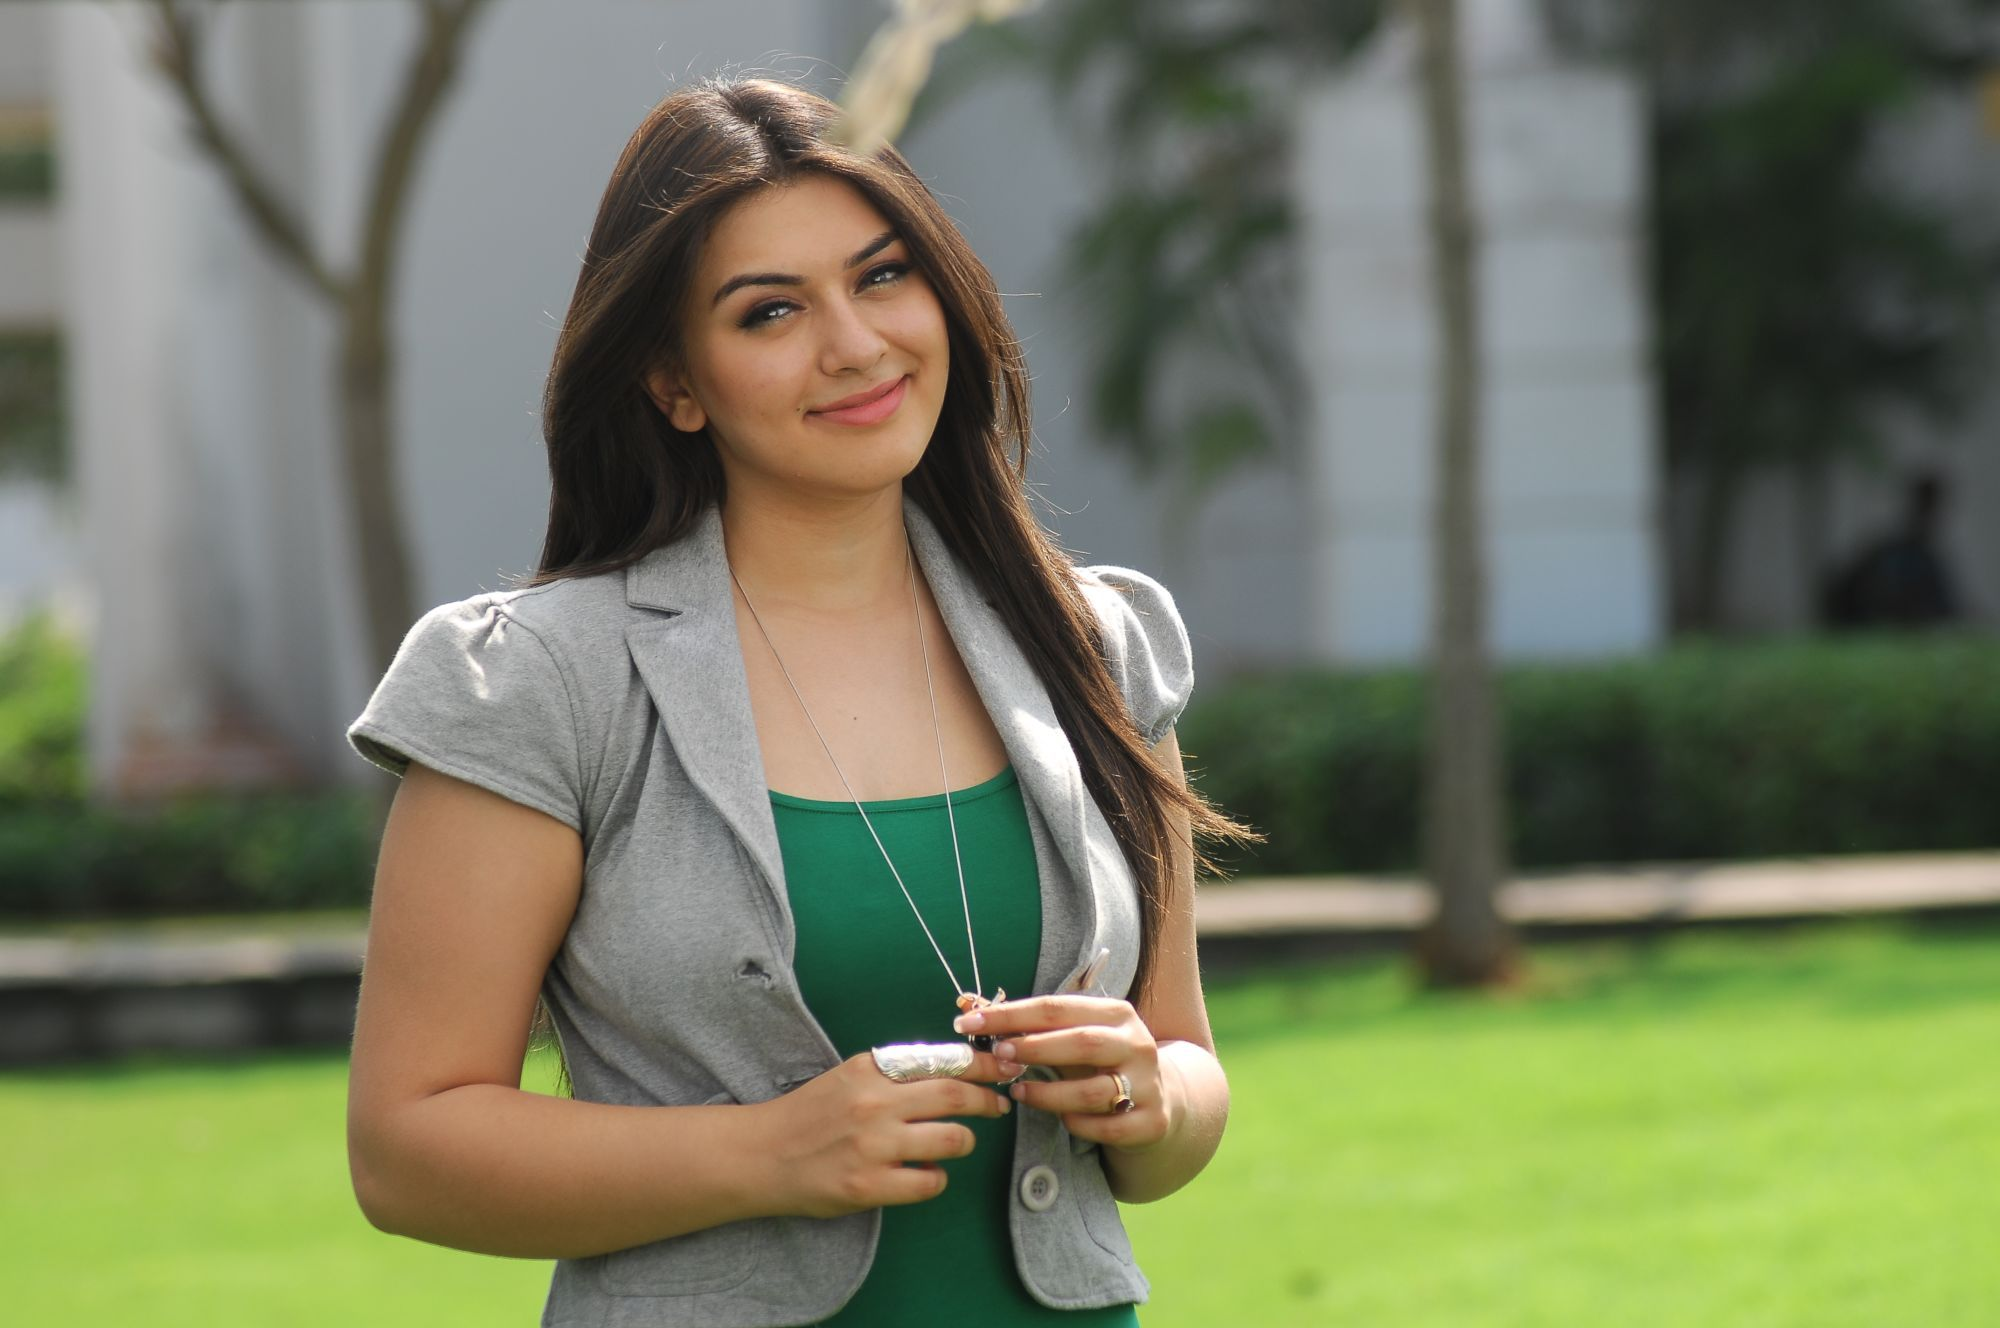 amazing hansika motwani lovely smile free download mobile background hd photos